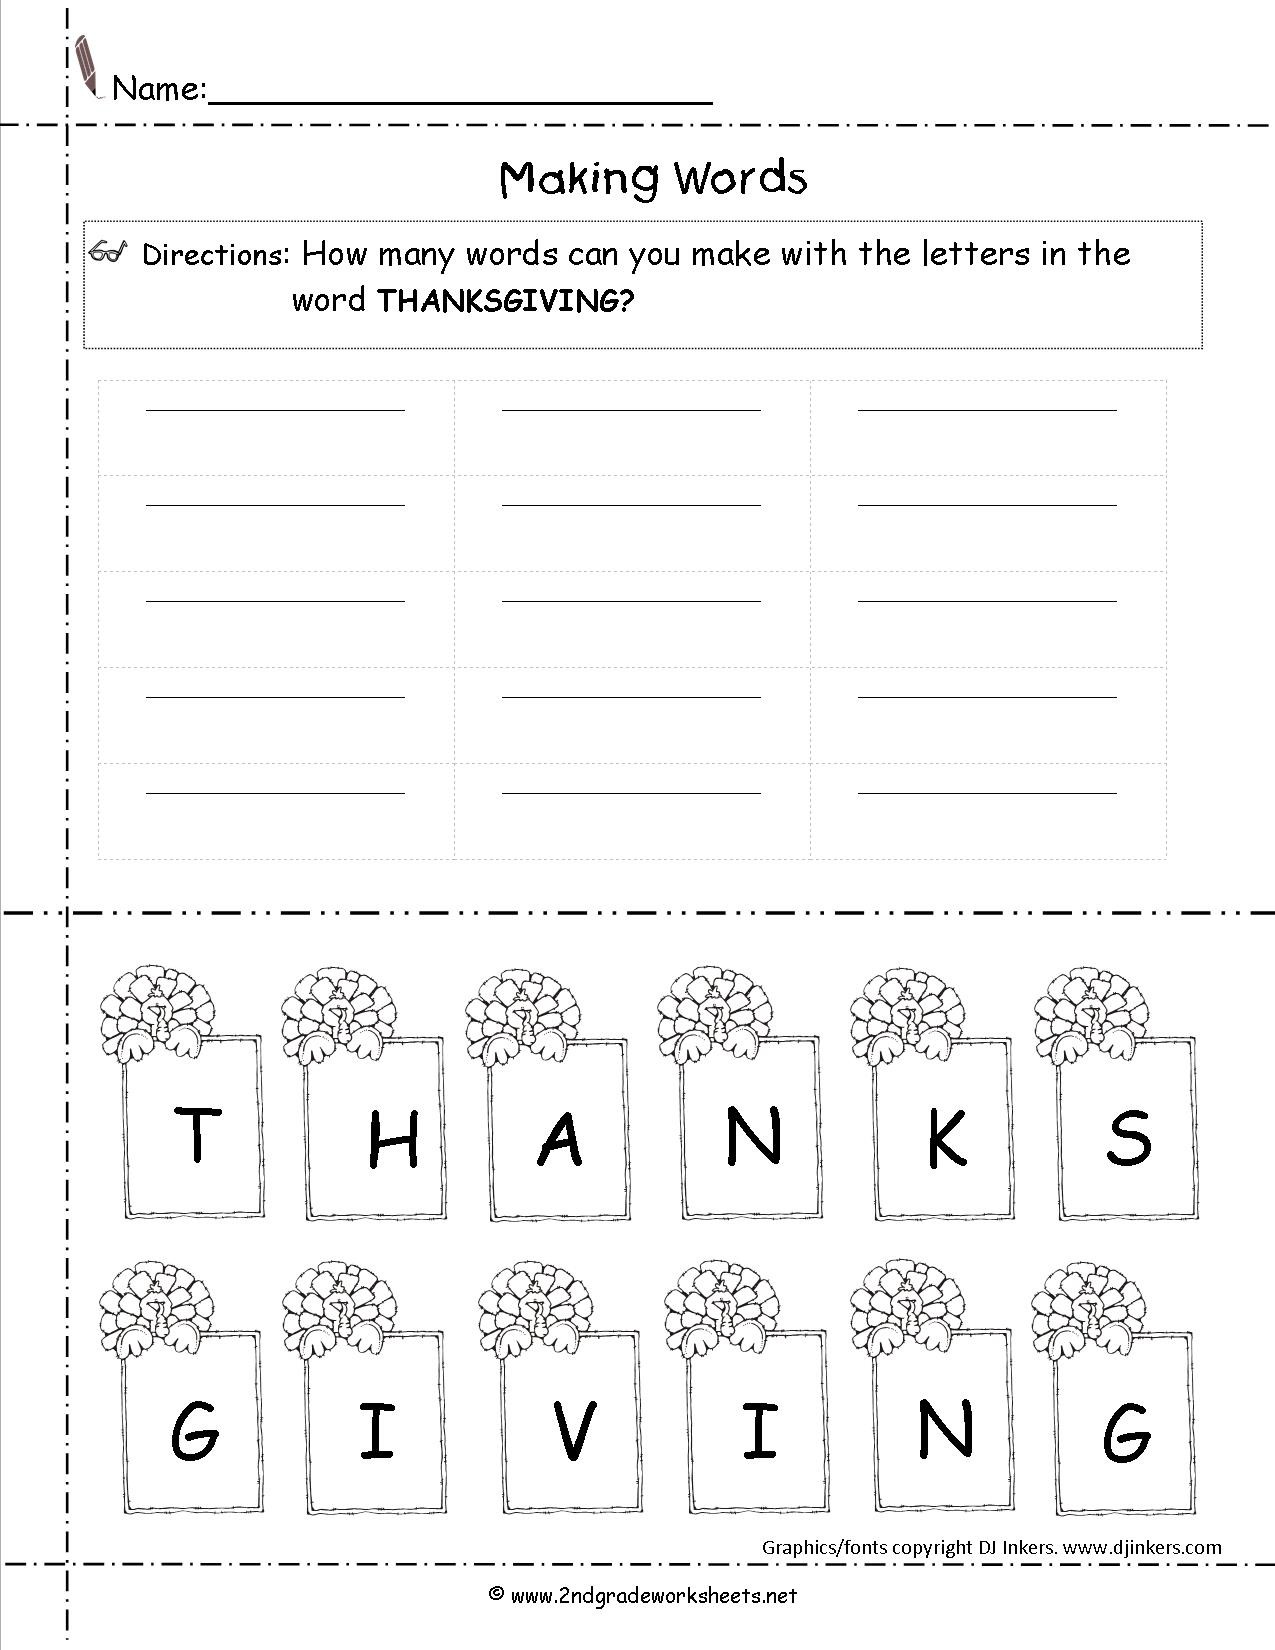 Thanksgiving Math Worksheets Middle School Thanksgiving Printouts and Worksheets Third Grade